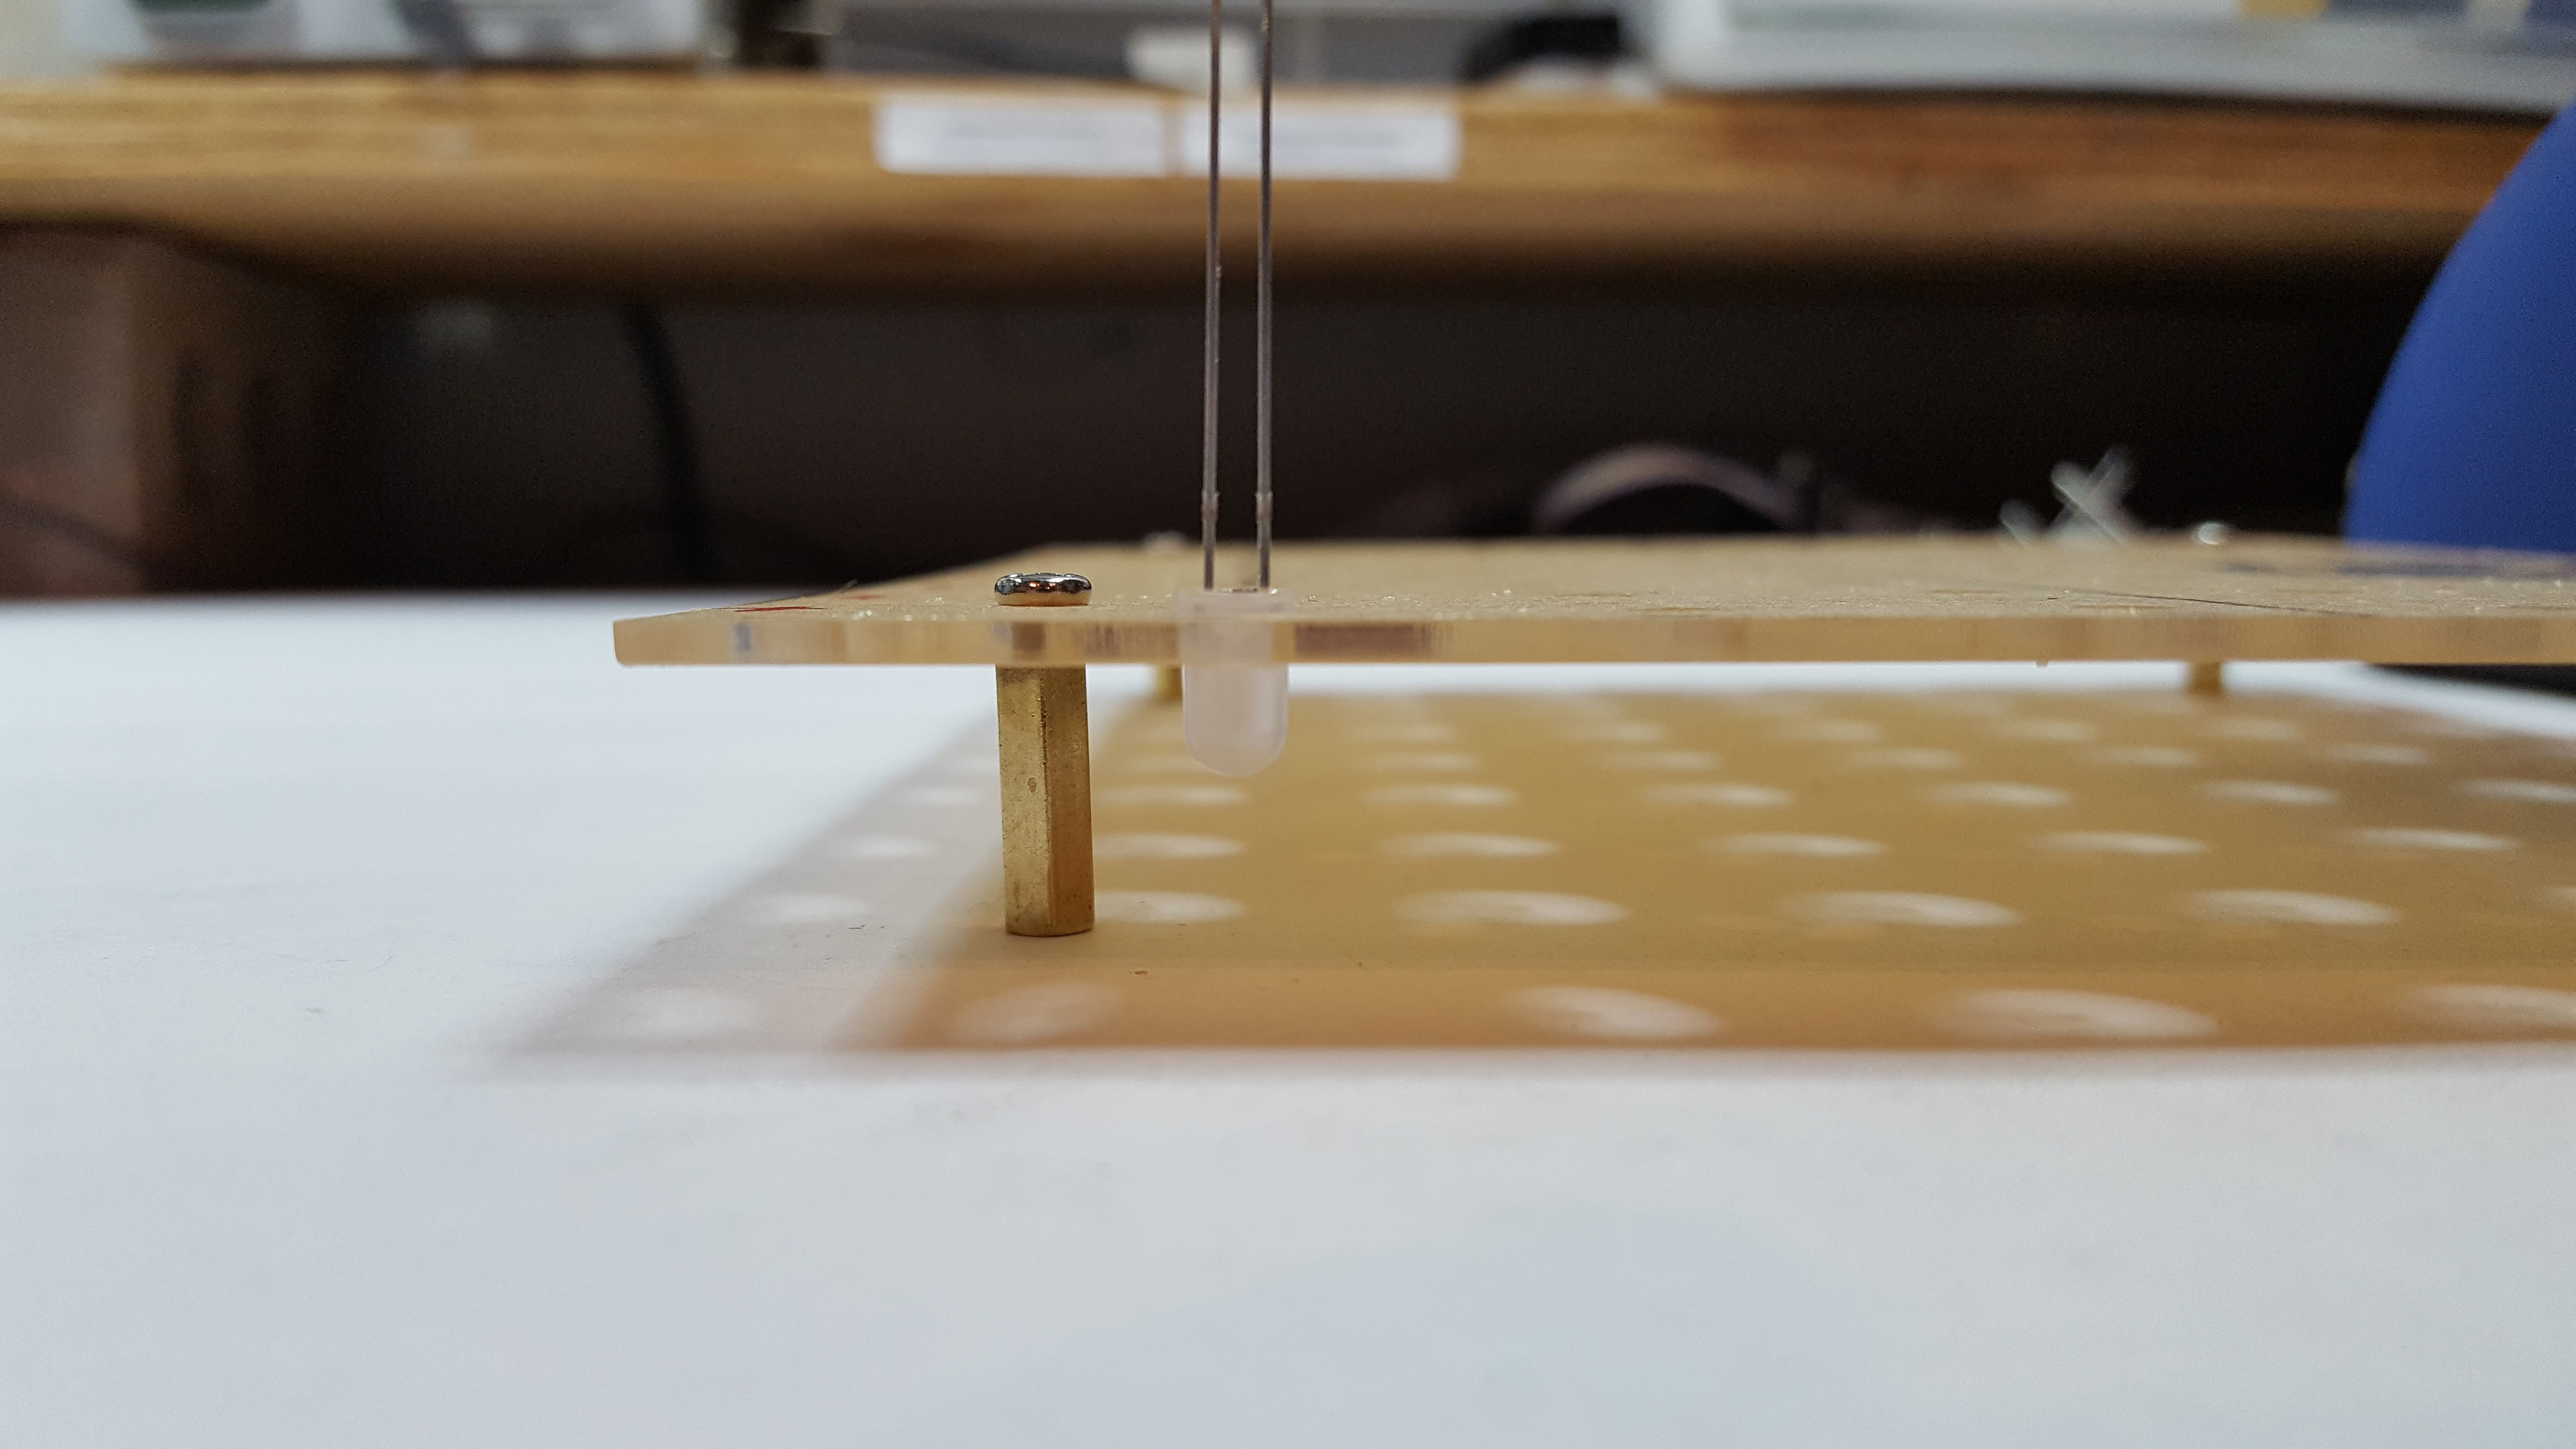 Picture of Jig to Build an 8 X 8 LED Wall